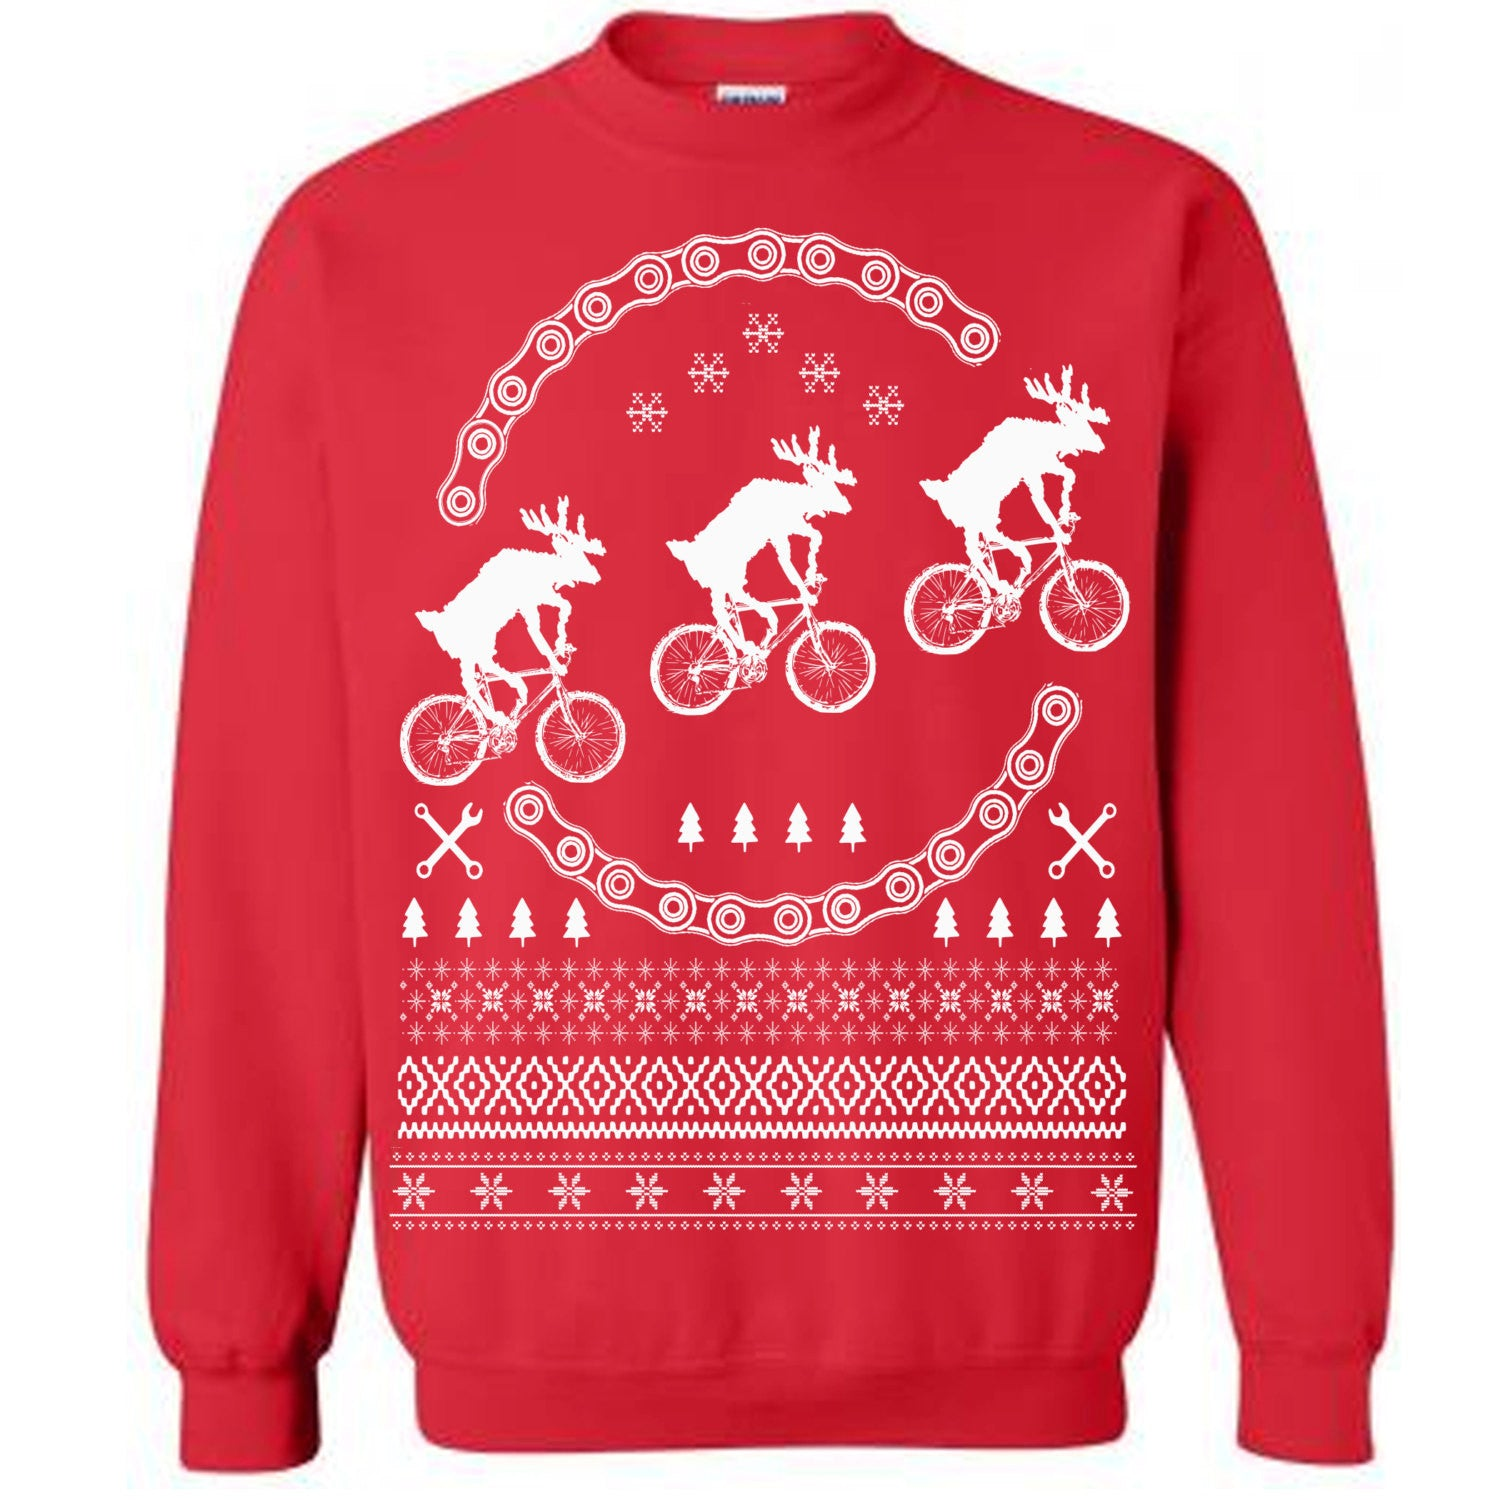 Christmas Ugly Sweater   Reindeers on Bikes Sweatershirt   Flex Fleece  Pullover   Size   Color Options 9a4121dd5